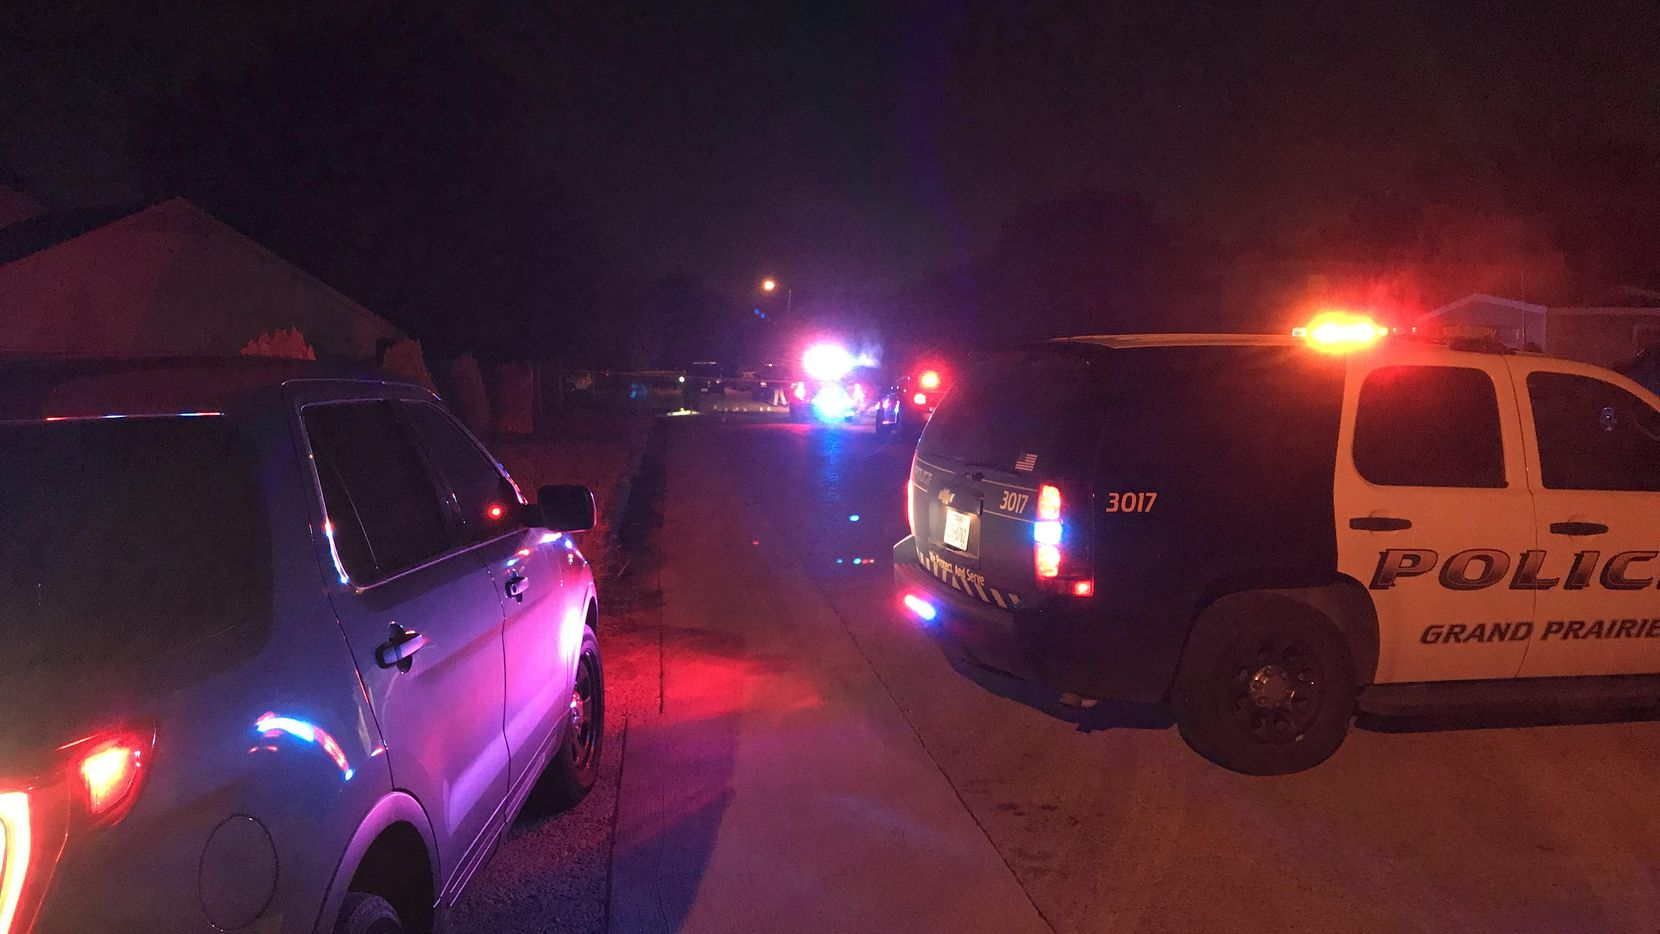 Four men were taken to various hospitals Thursday night after a shootout in Grand Prairie.